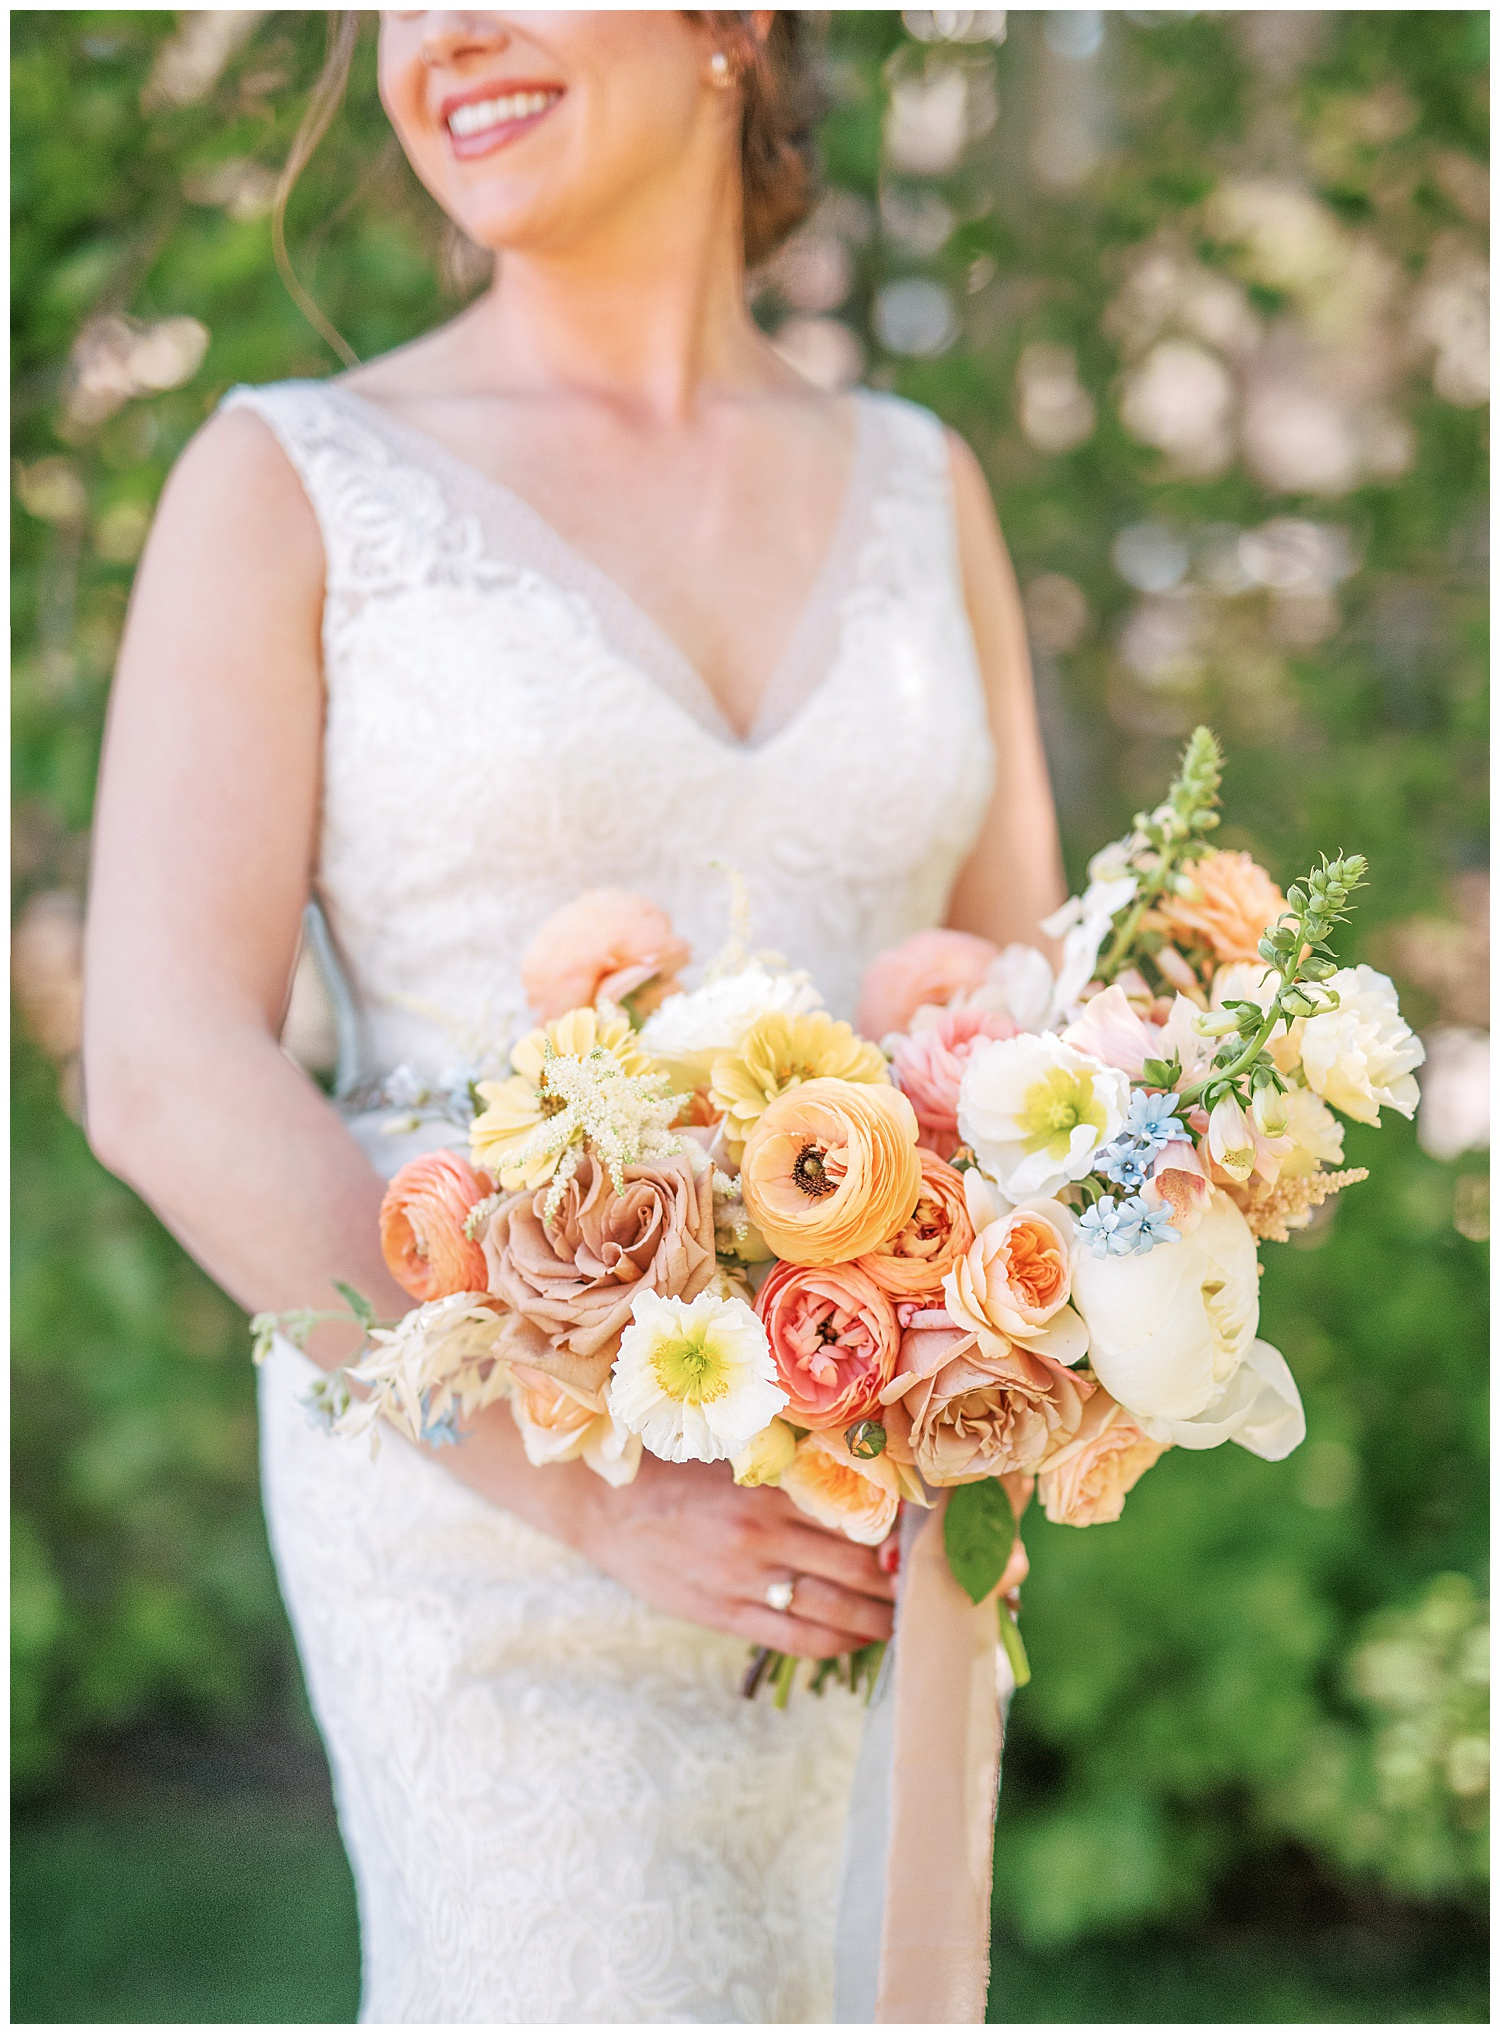 Janine_Licare_Photography_San_Francisco_Wedding_Photographer_Lake_Tahoe_West_Shore_Cafe_Colorful_Summer_0017.jpg